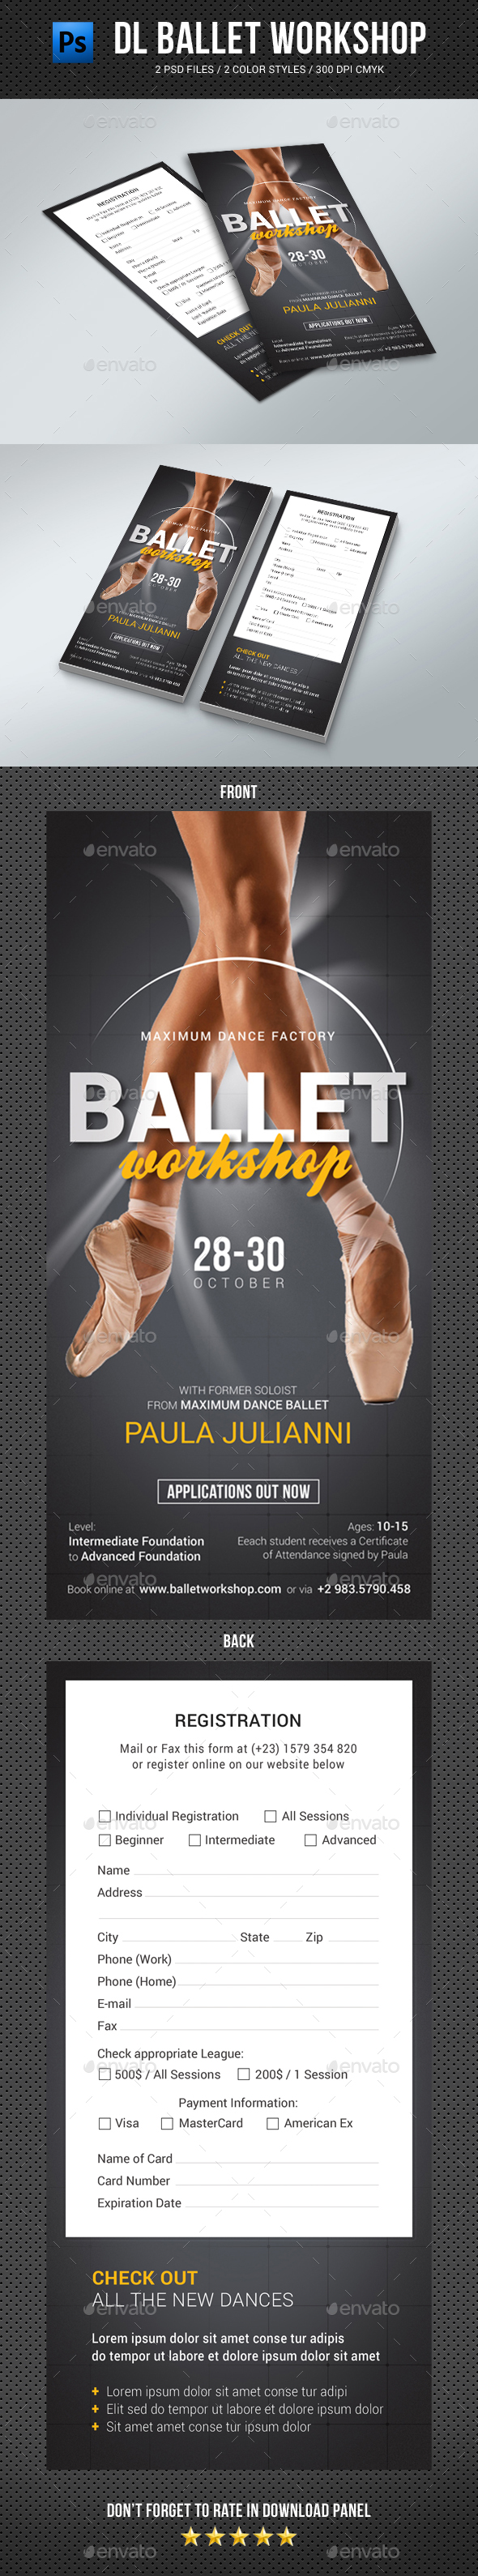 DL Ballet Workshop Flyer - Events Flyers